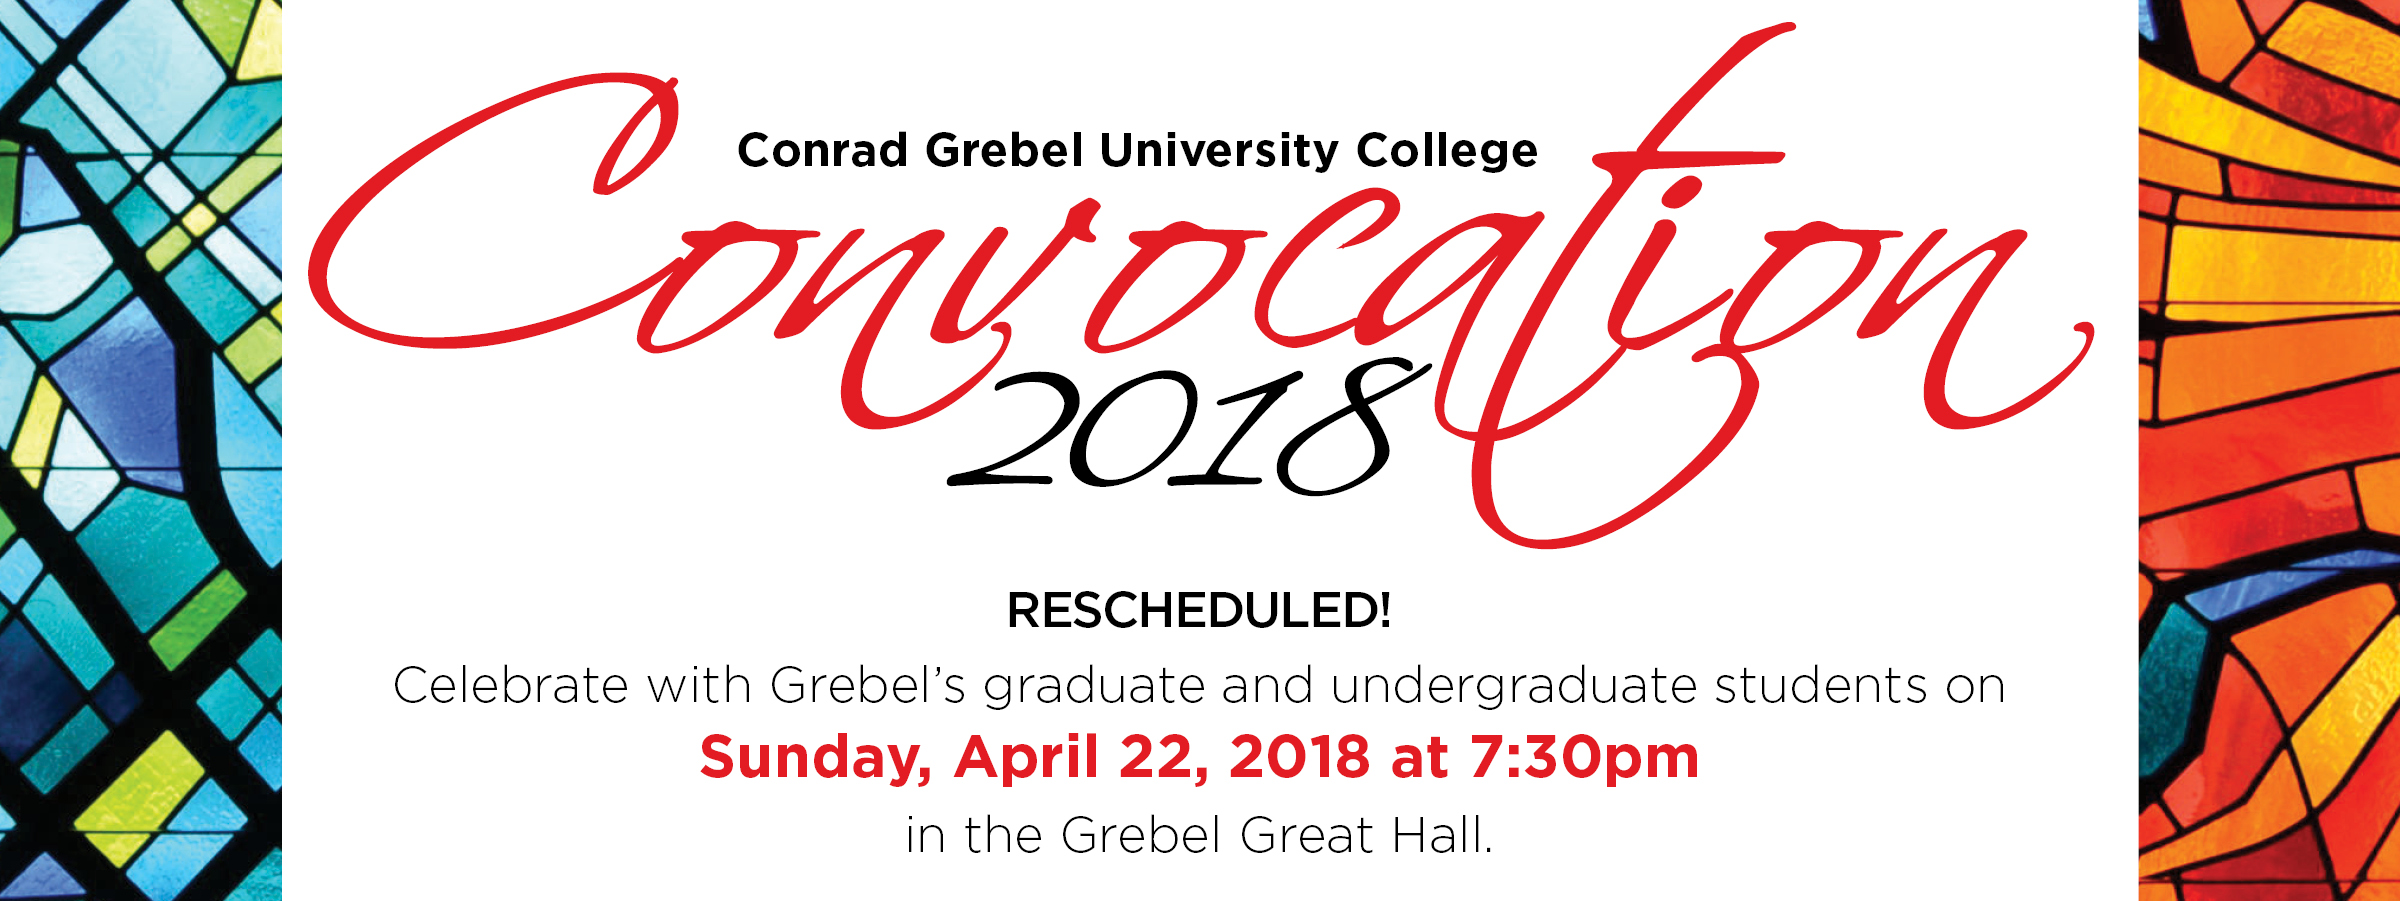 Convocation 2018 rescheduled